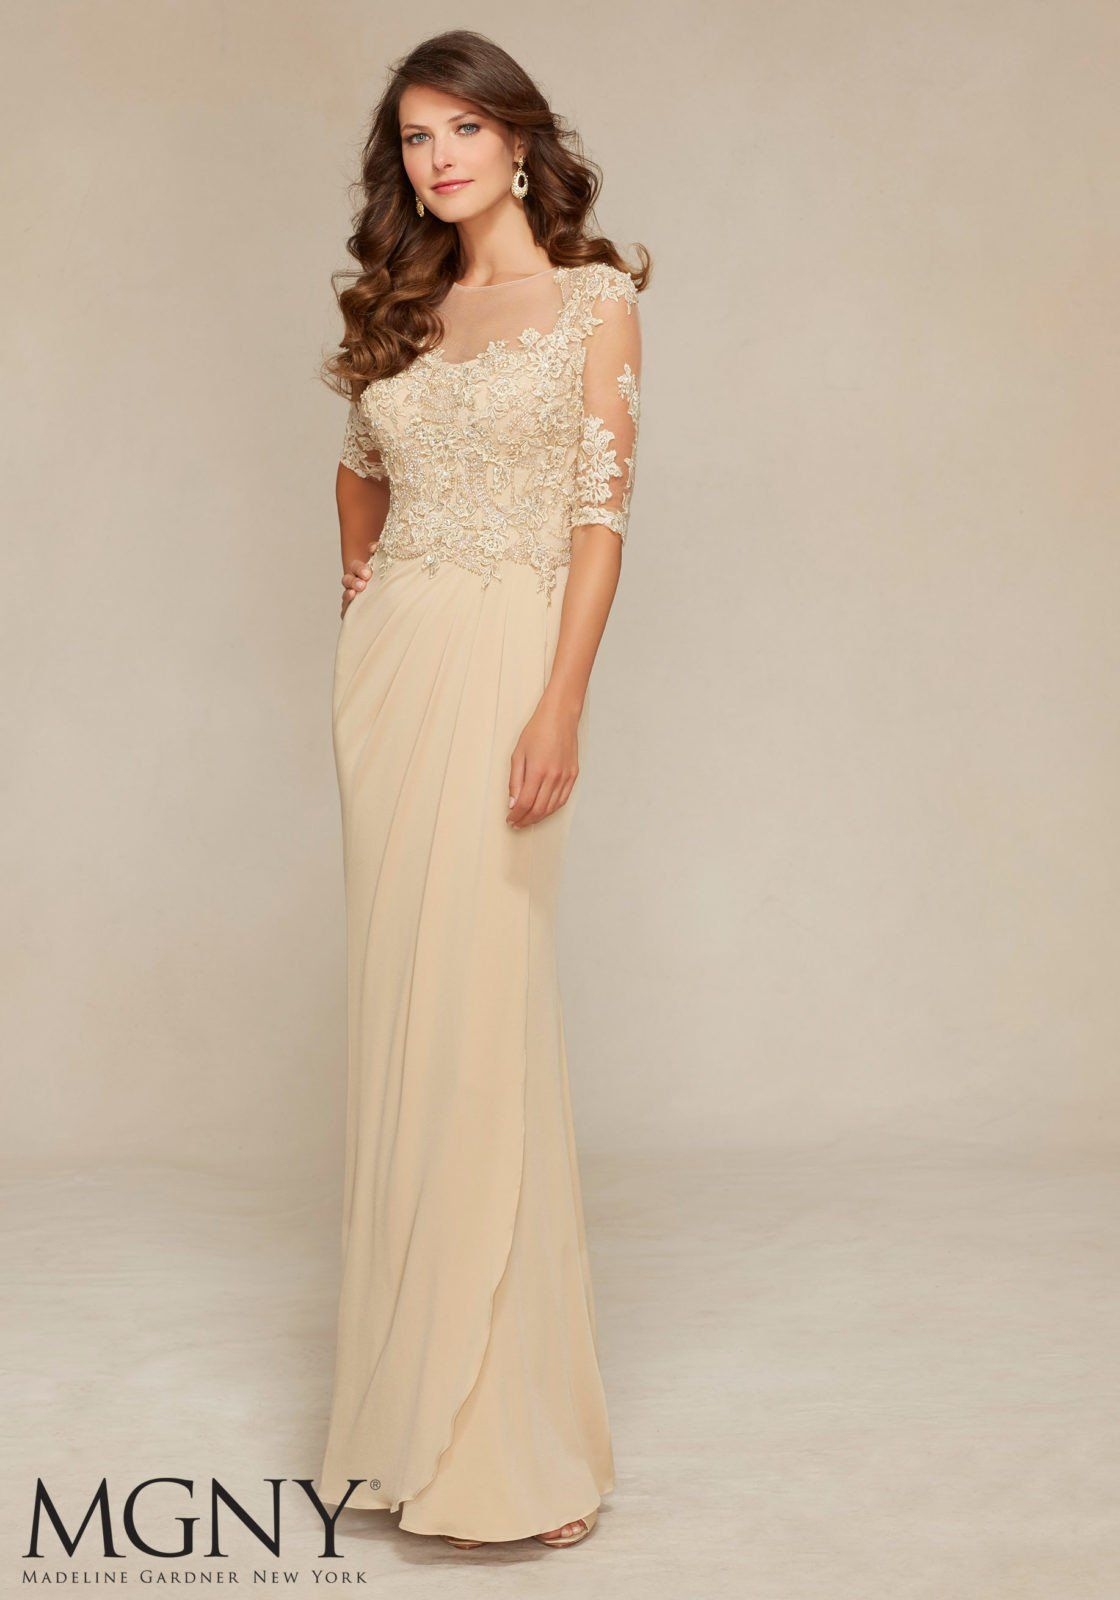 Venice mesh dress in light gold mother of the bride pinterest